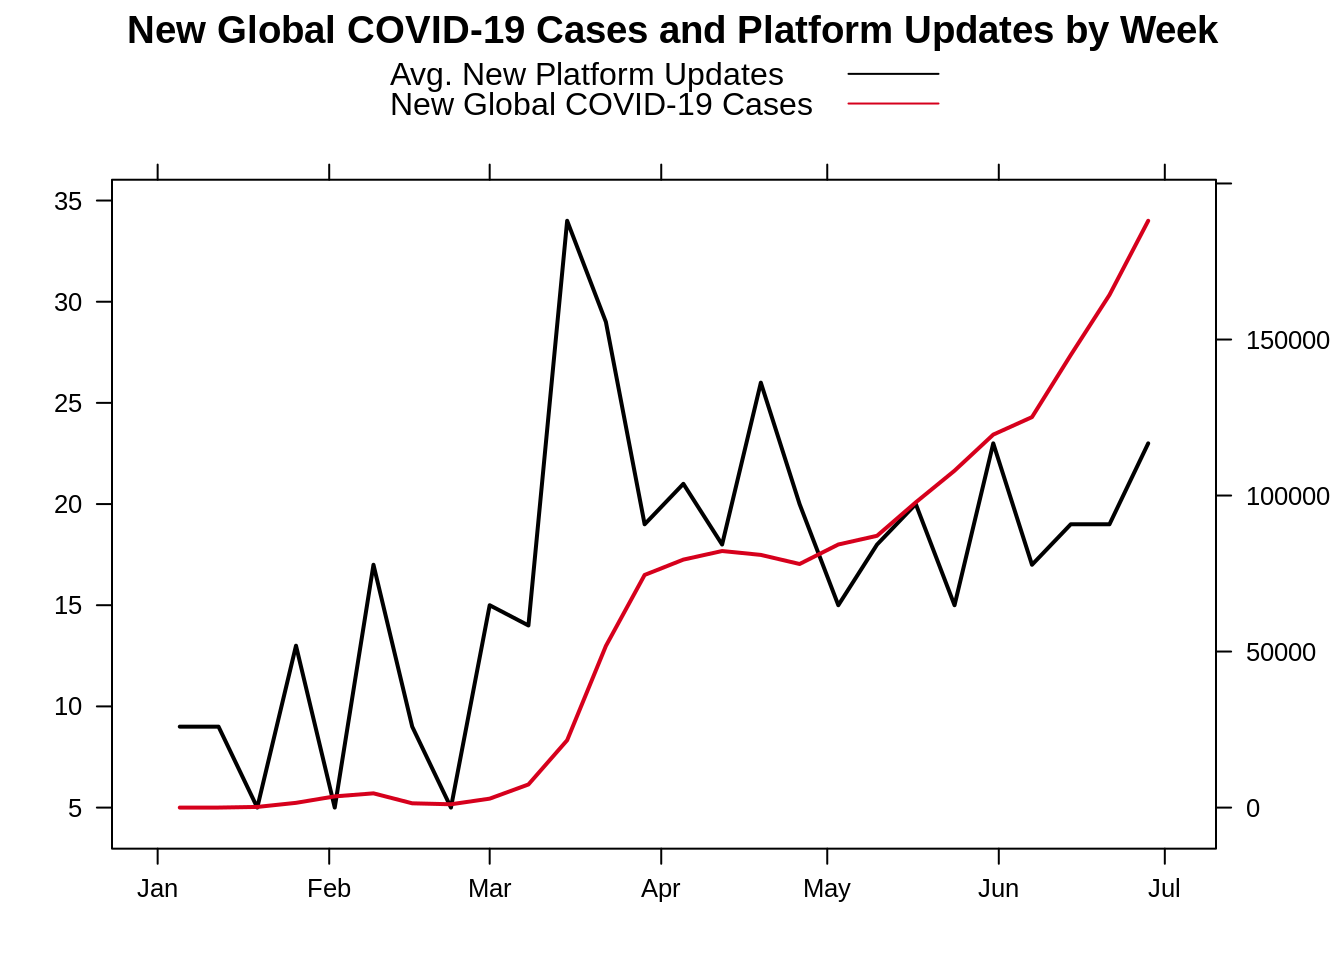 Graph showing new global COVID-19 cases and platform updates by week